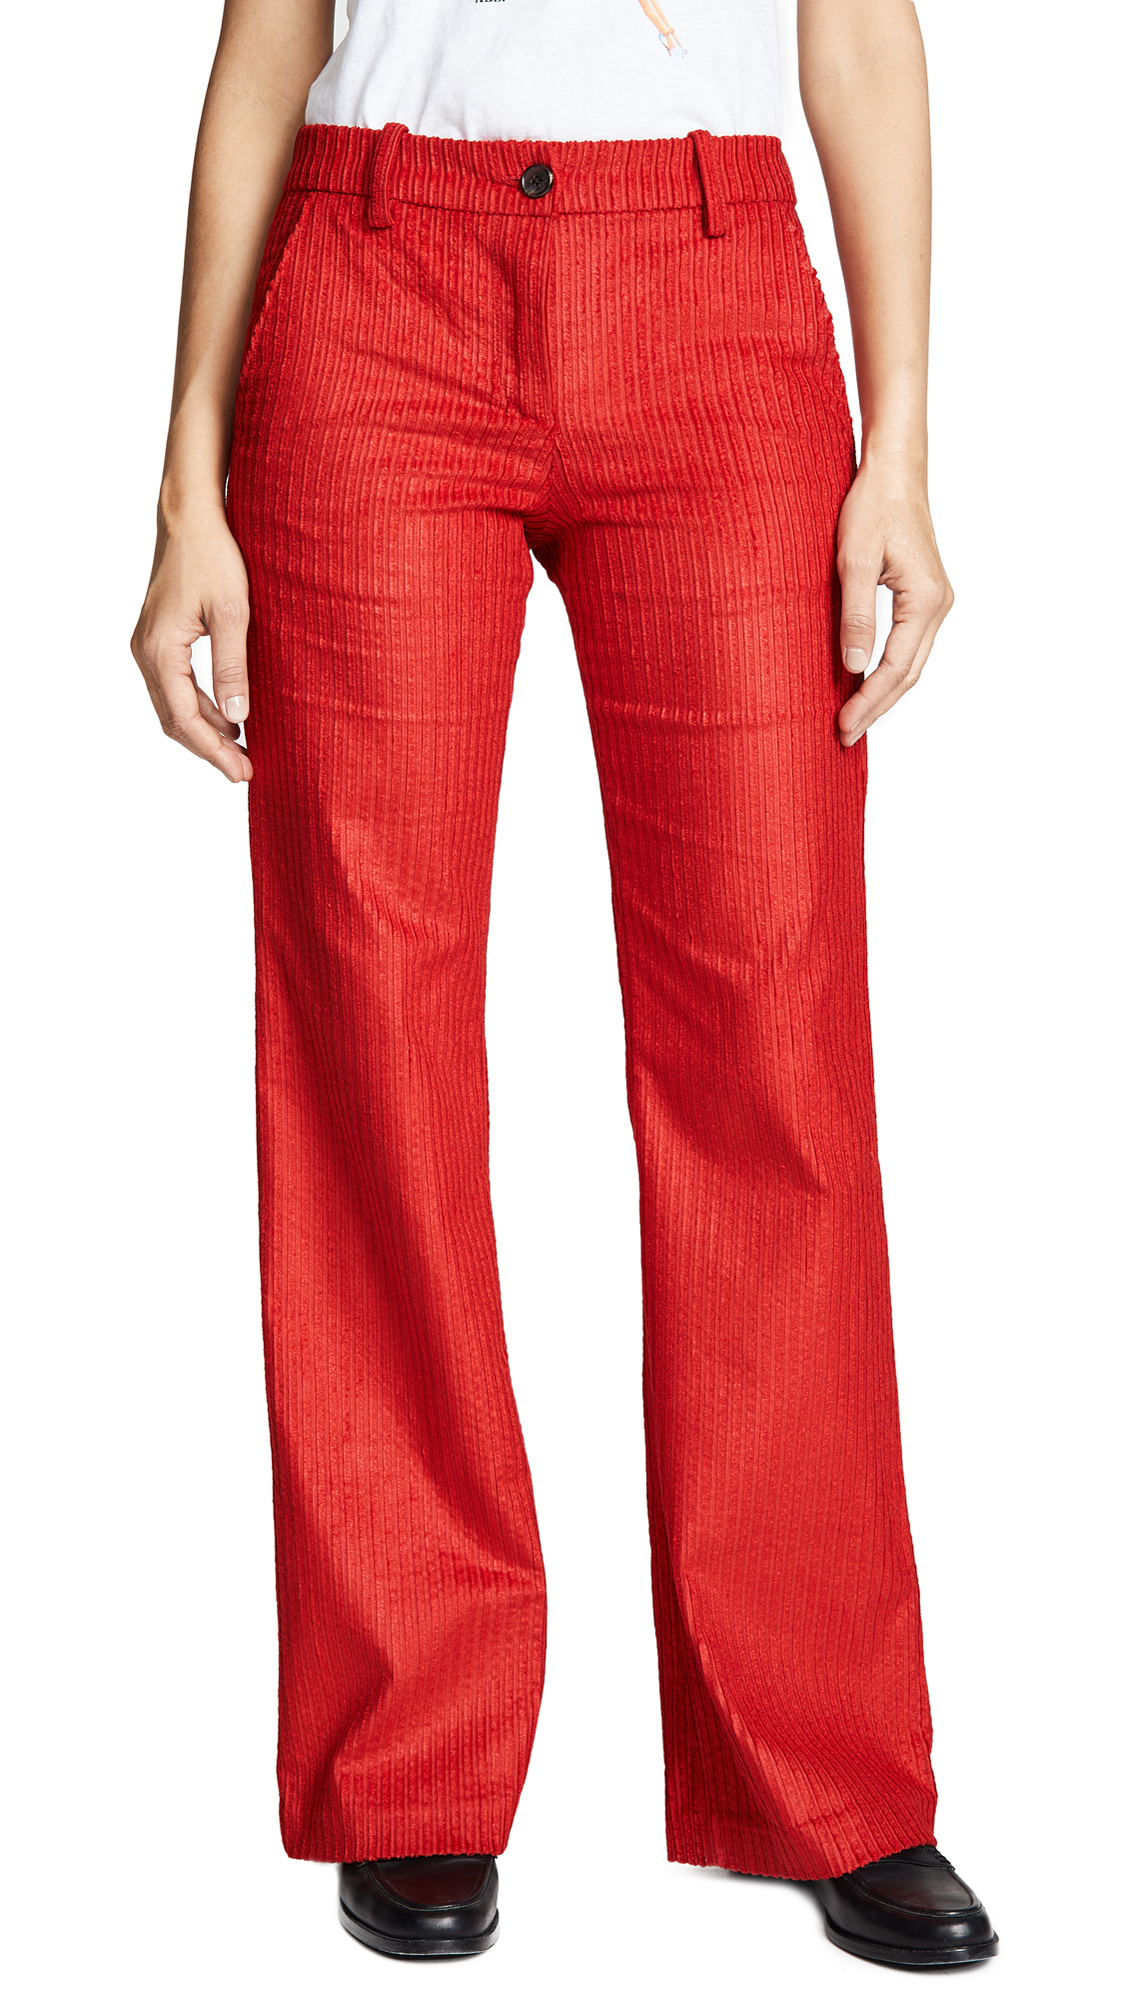 EI8HTDREAMS CORDUROY WIDE FLARE TROUSERS